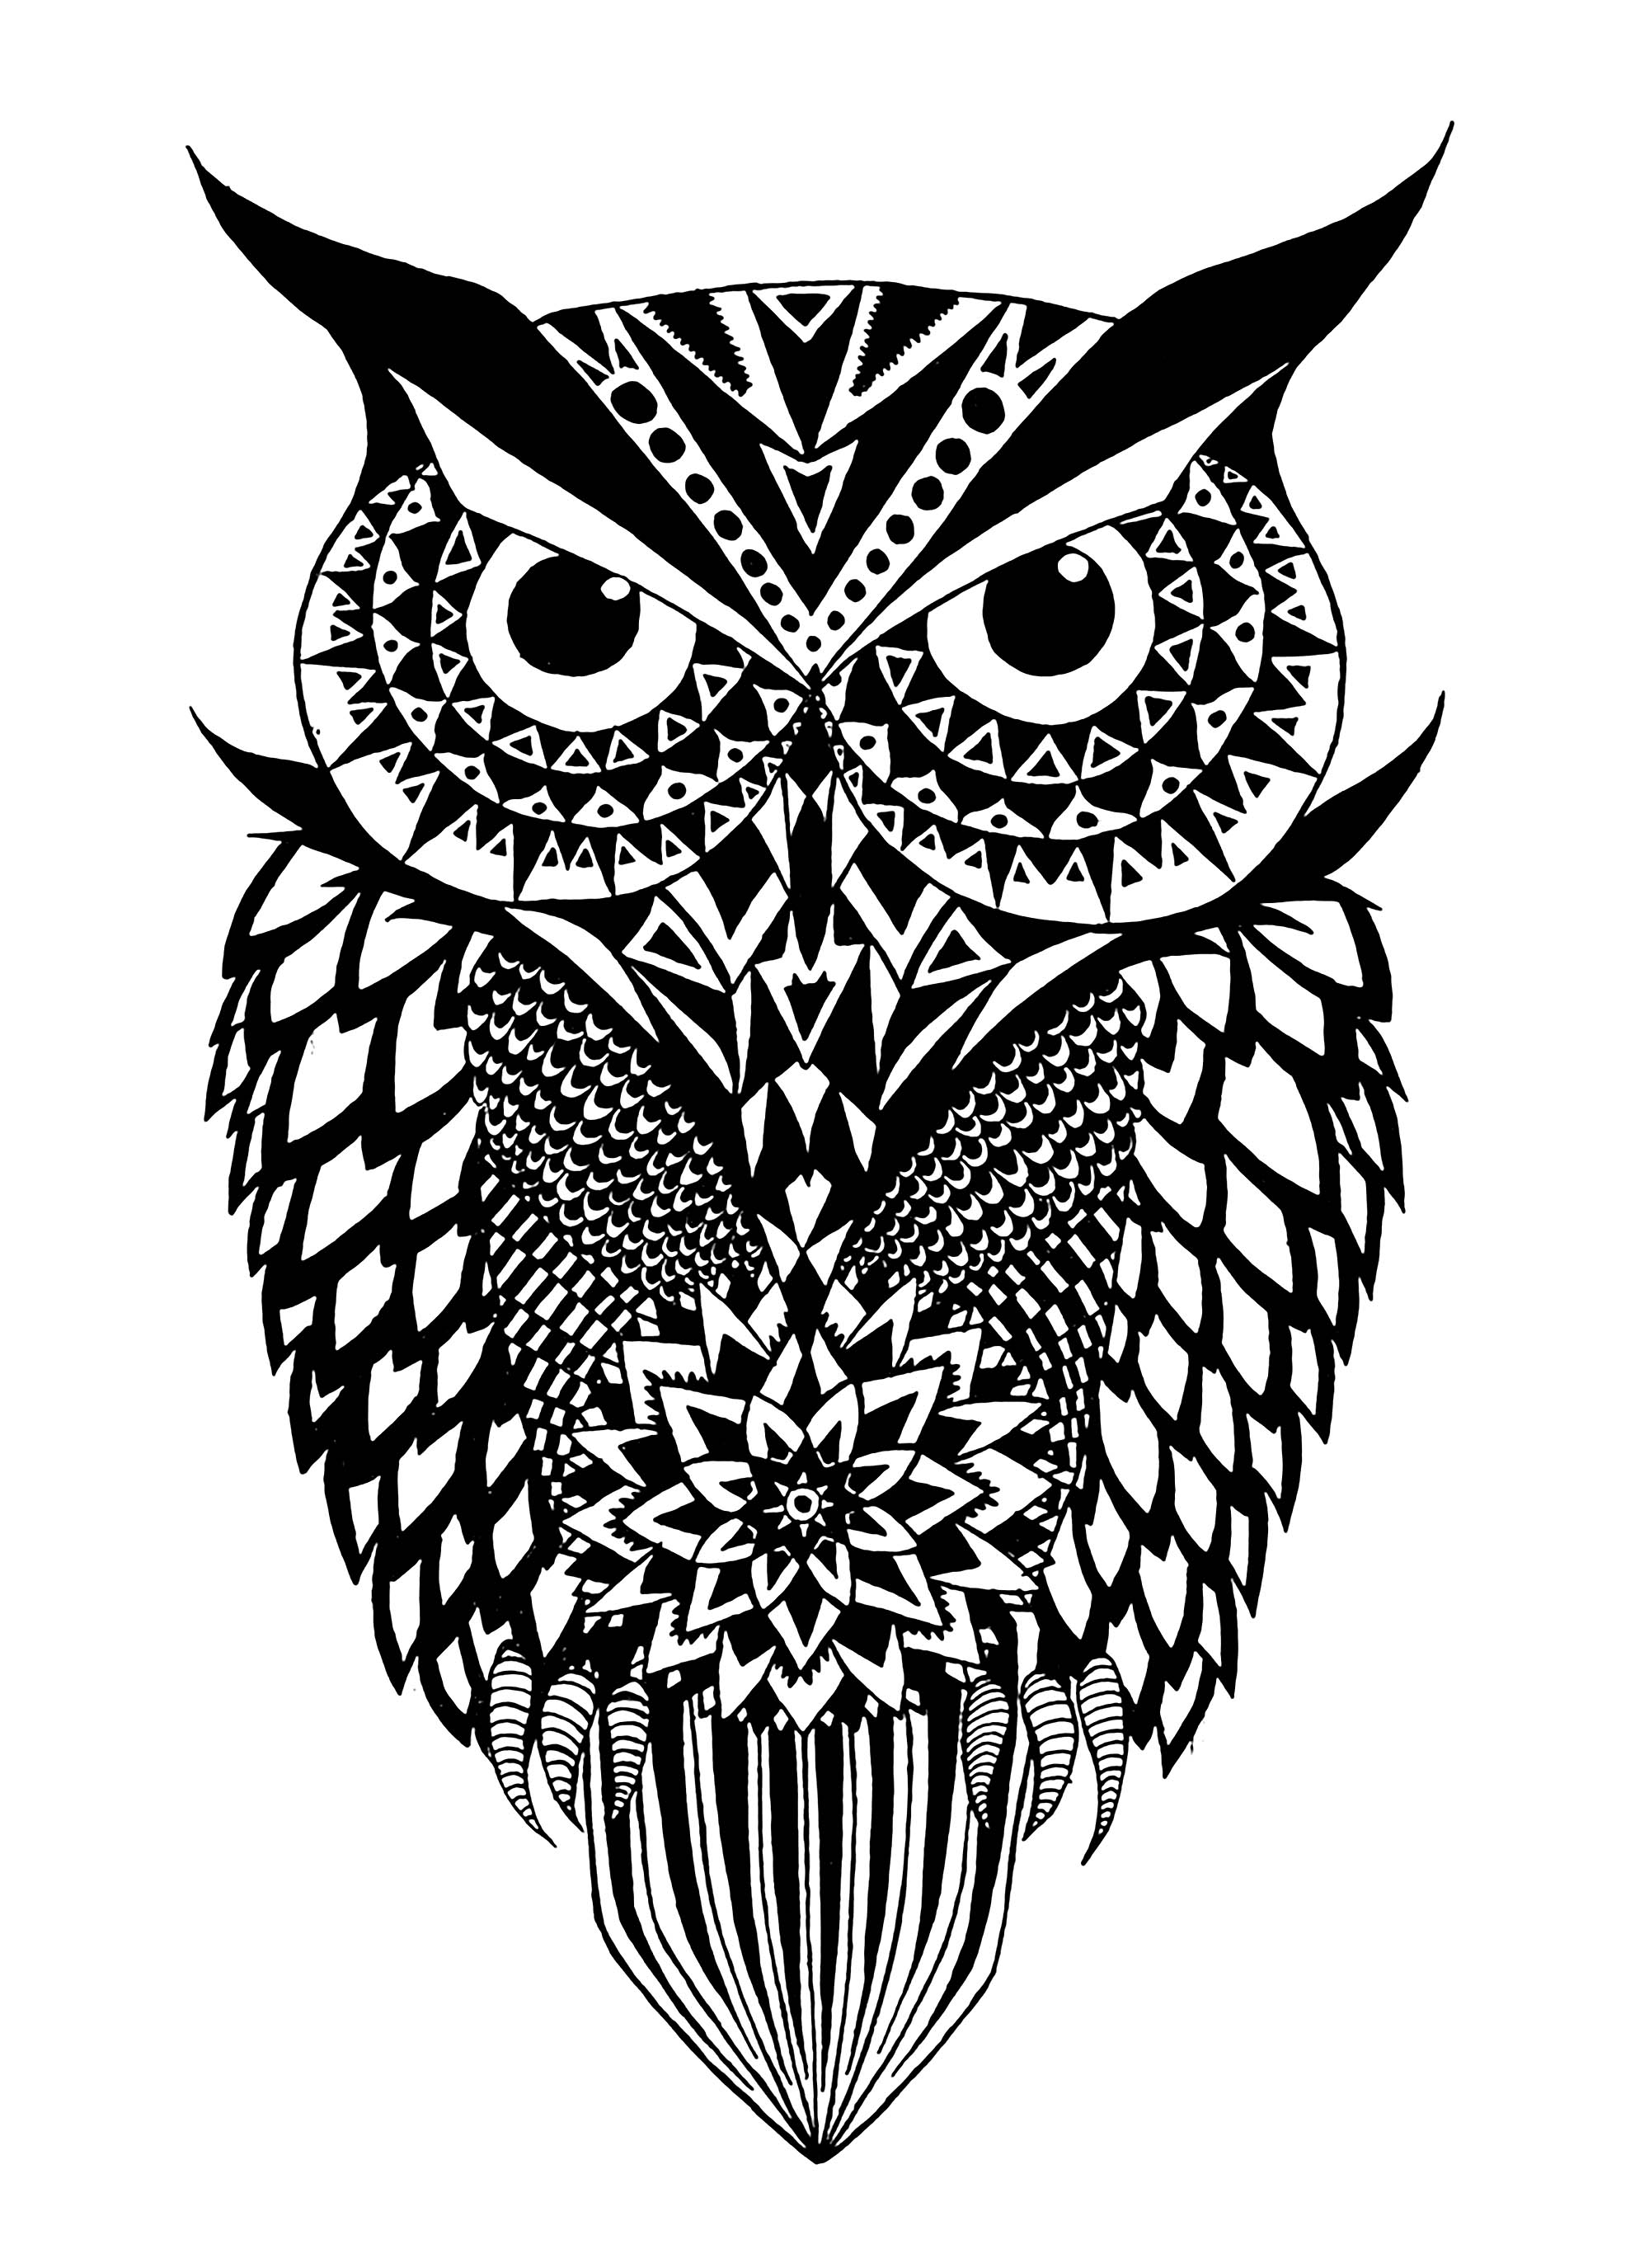 coloring kite images black and white black and white owl owls adult coloring pages black images and kite white coloring